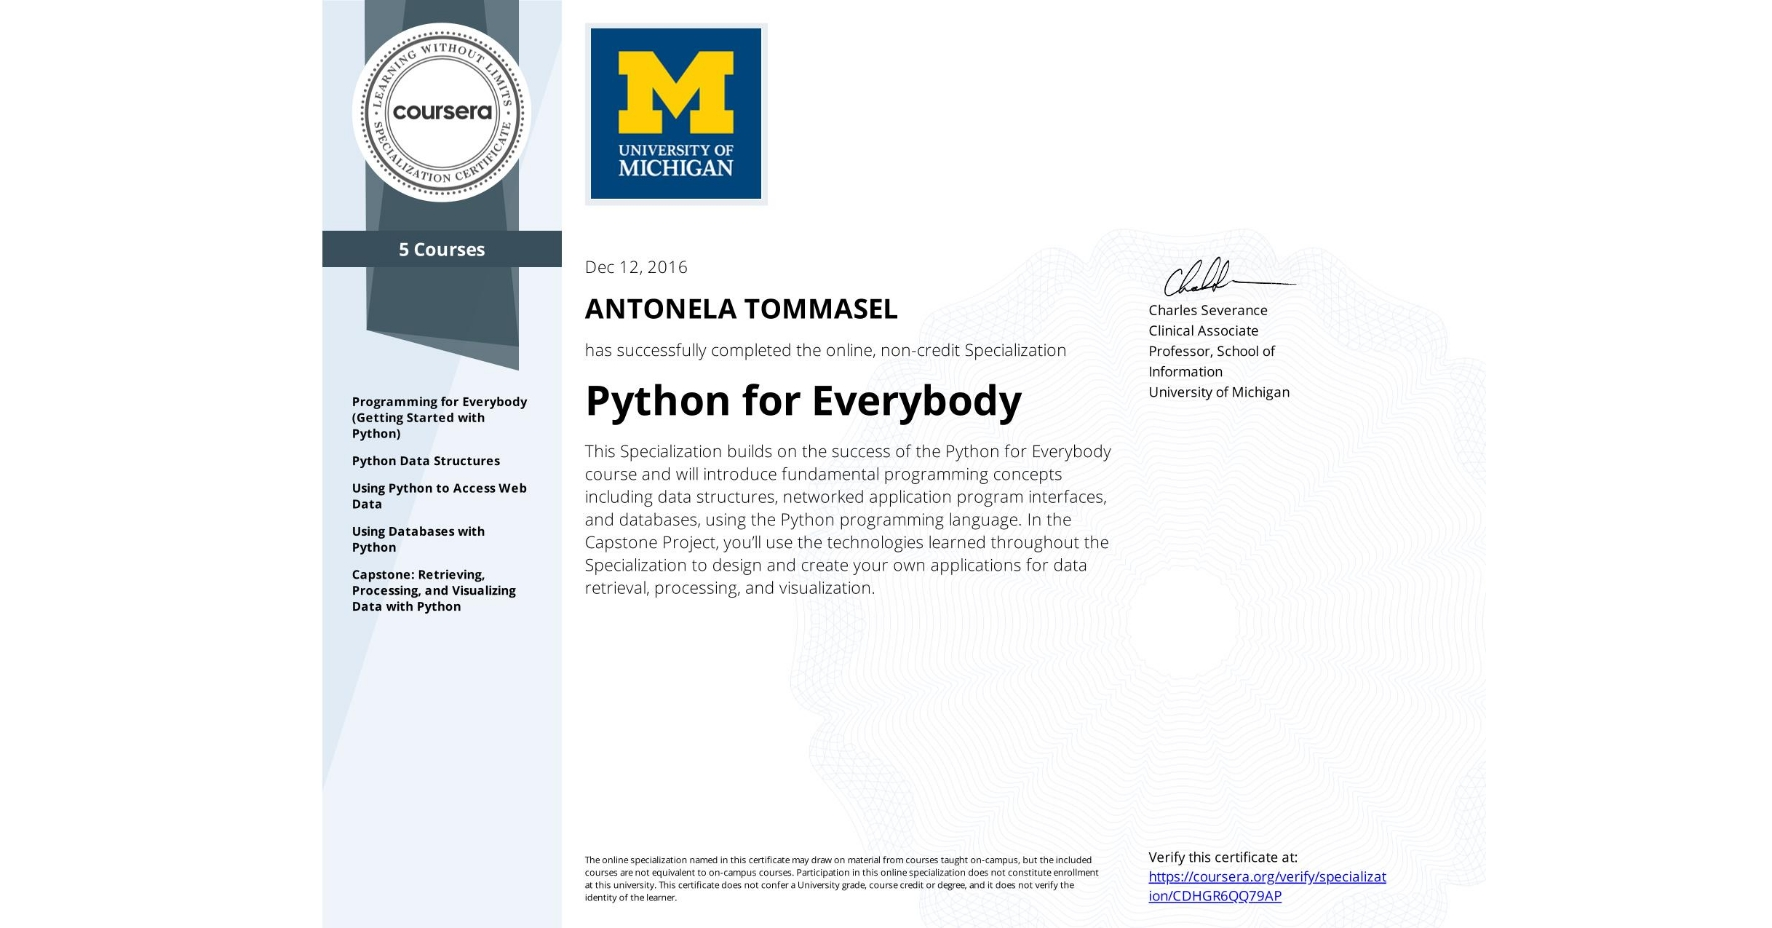 View certificate for Antonela Tommasel, Python for Everybody, offered through Coursera. This Specialization builds on the success of the Python for Everybody course and will introduce fundamental programming concepts including data structures, networked application program interfaces, and databases, using the Python programming language. In the Capstone Project, you'll use the technologies learned throughout the Specialization to design and create your own applications for data retrieval, processing, and visualization.